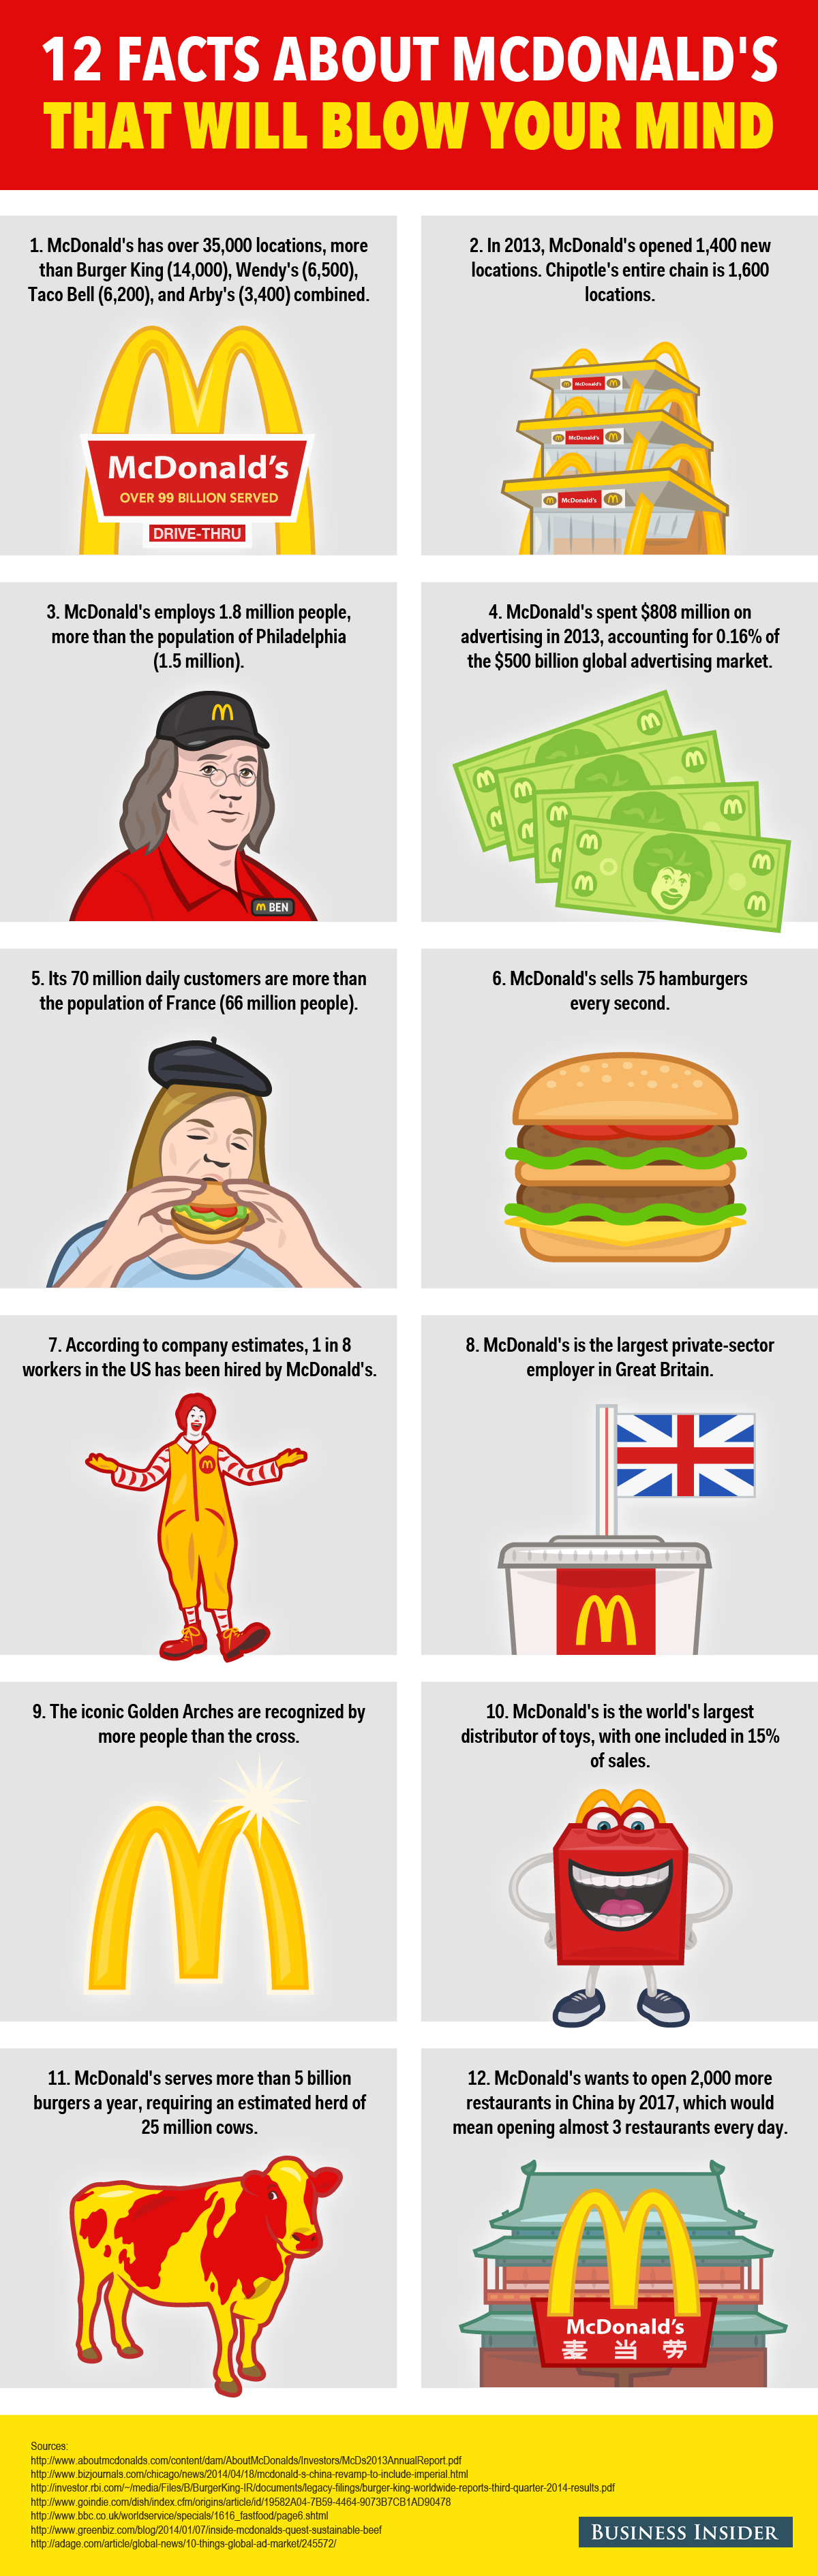 facts about mcdonalds 2015_03